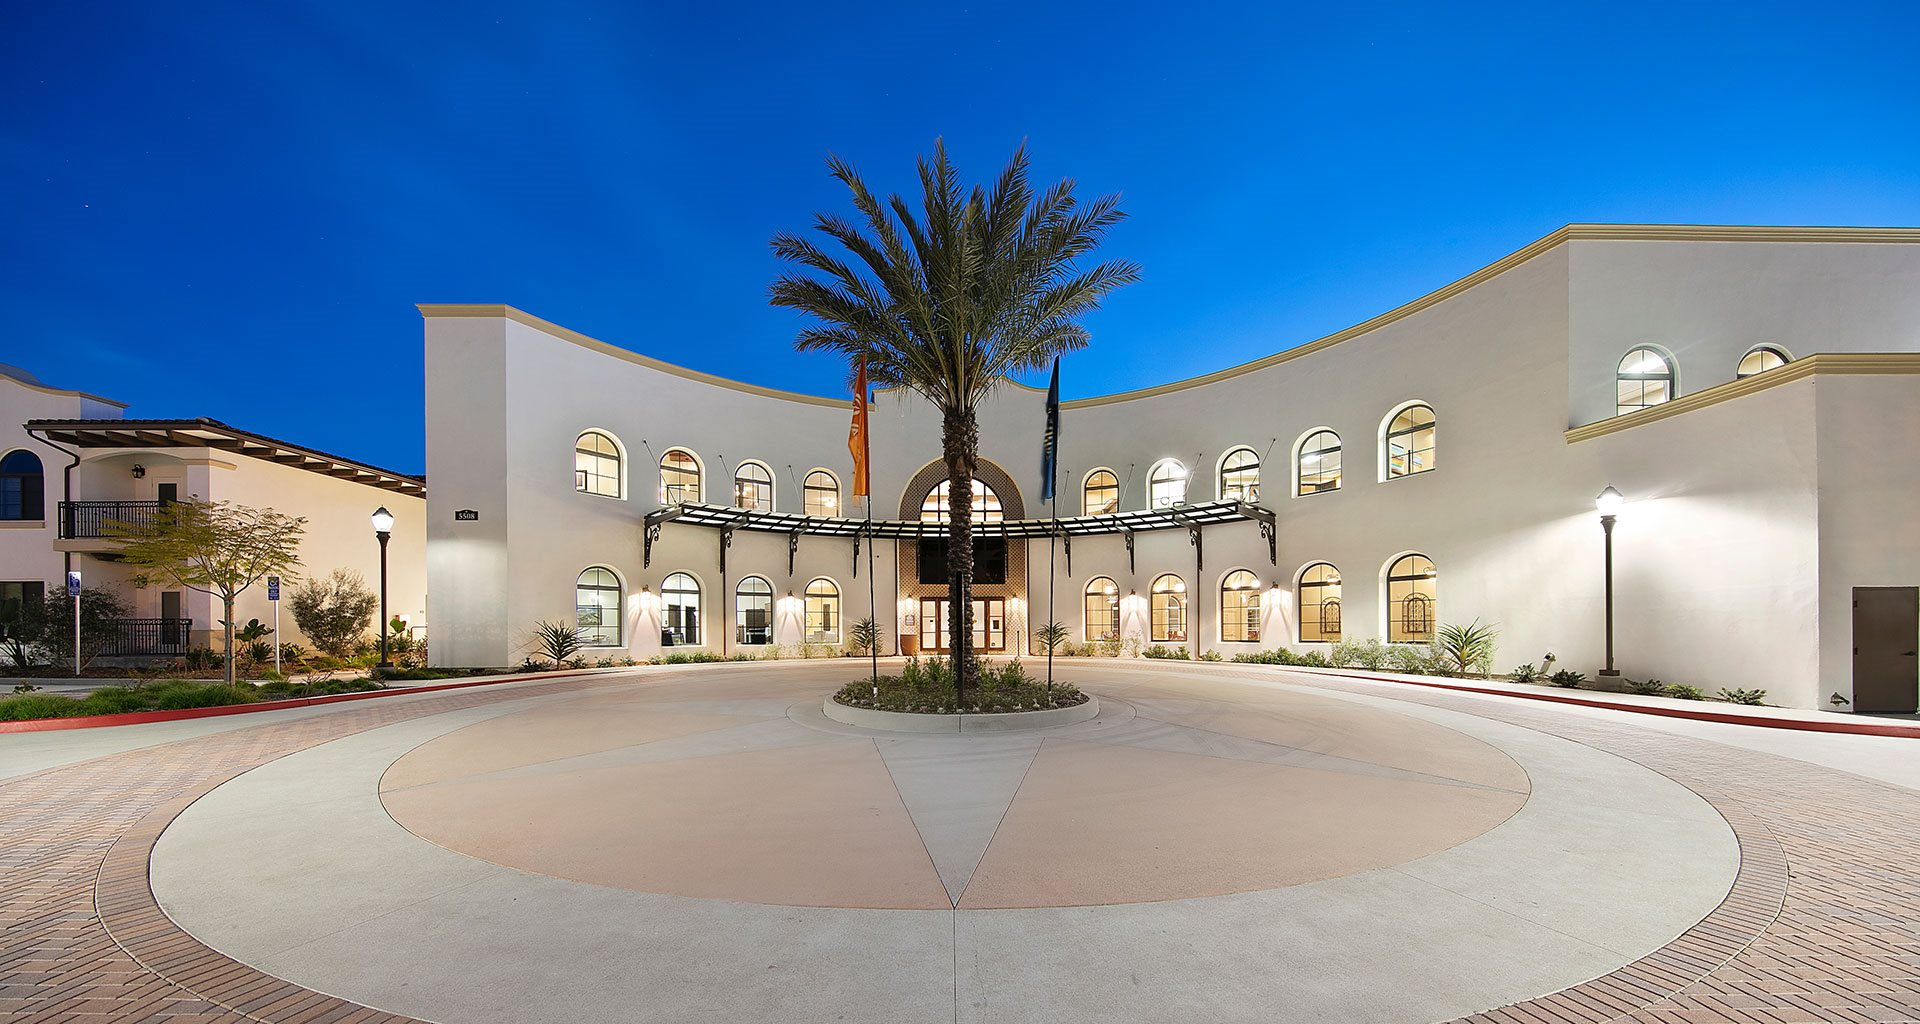 Elegant Exterior View Of Property at Pacifica Senior Living Oceanside, Oceanside, CA, 92057